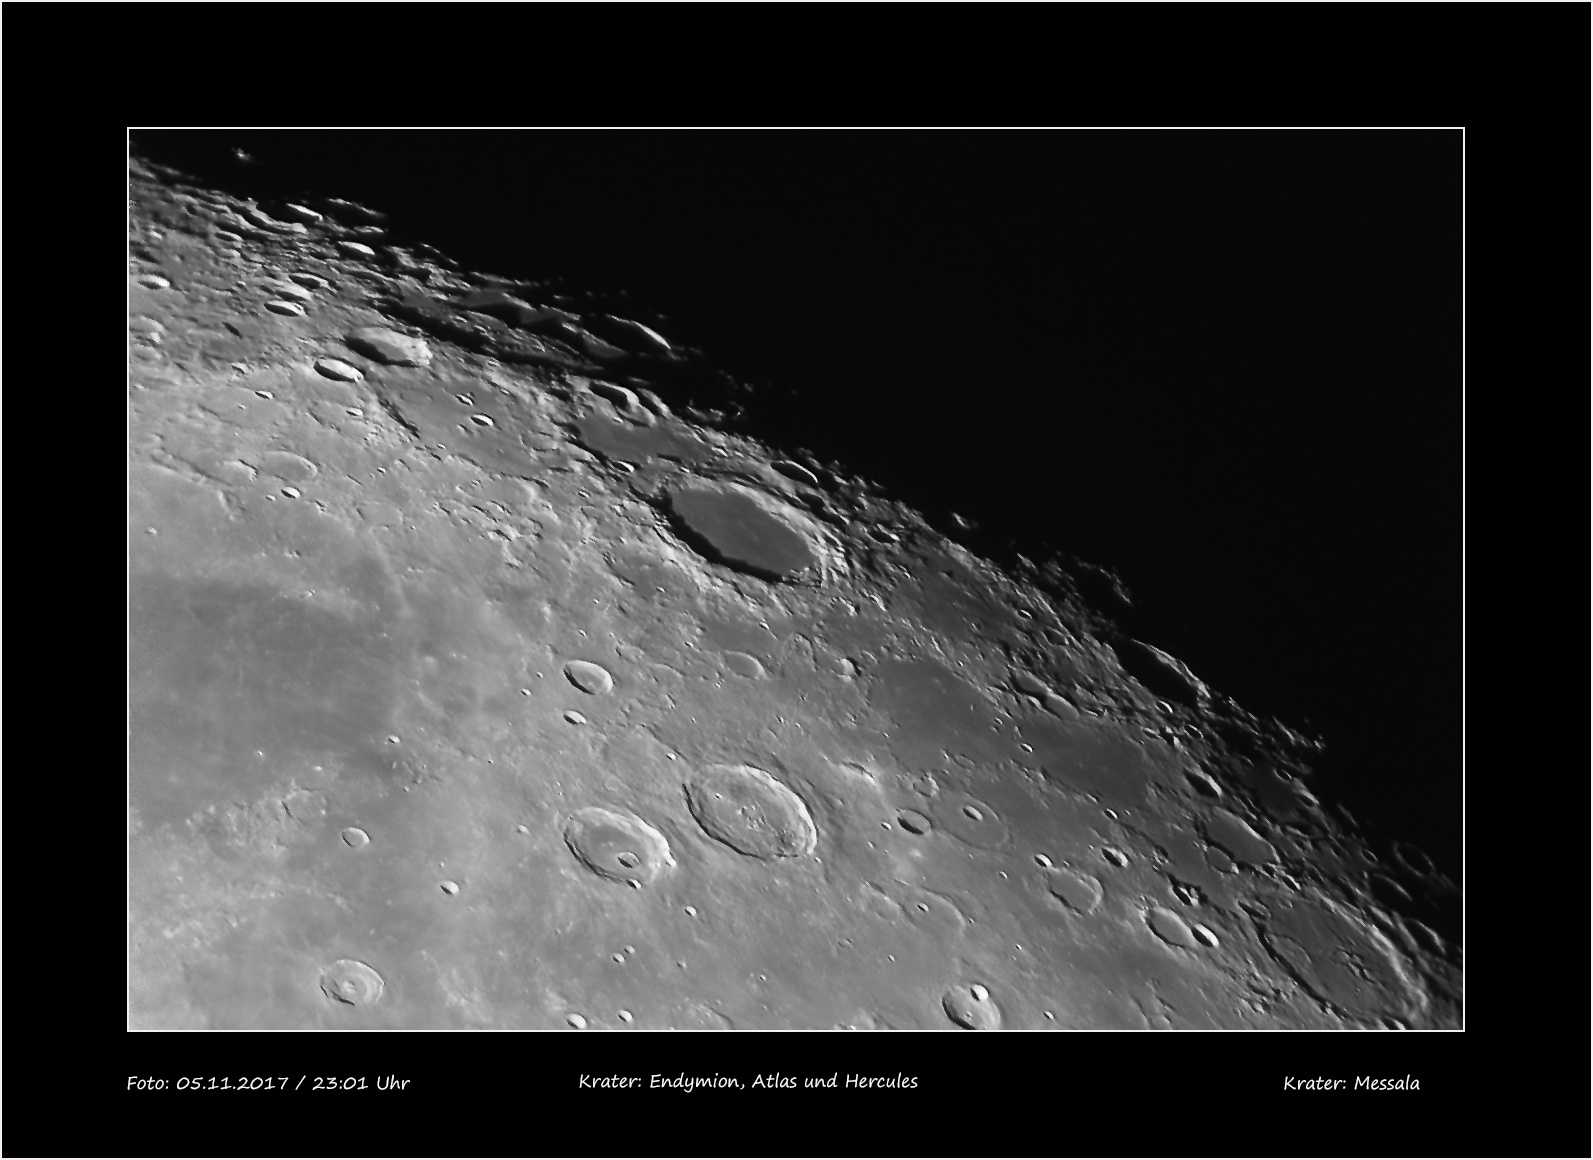 Moon_220516_2_Endymion_Text.jpg